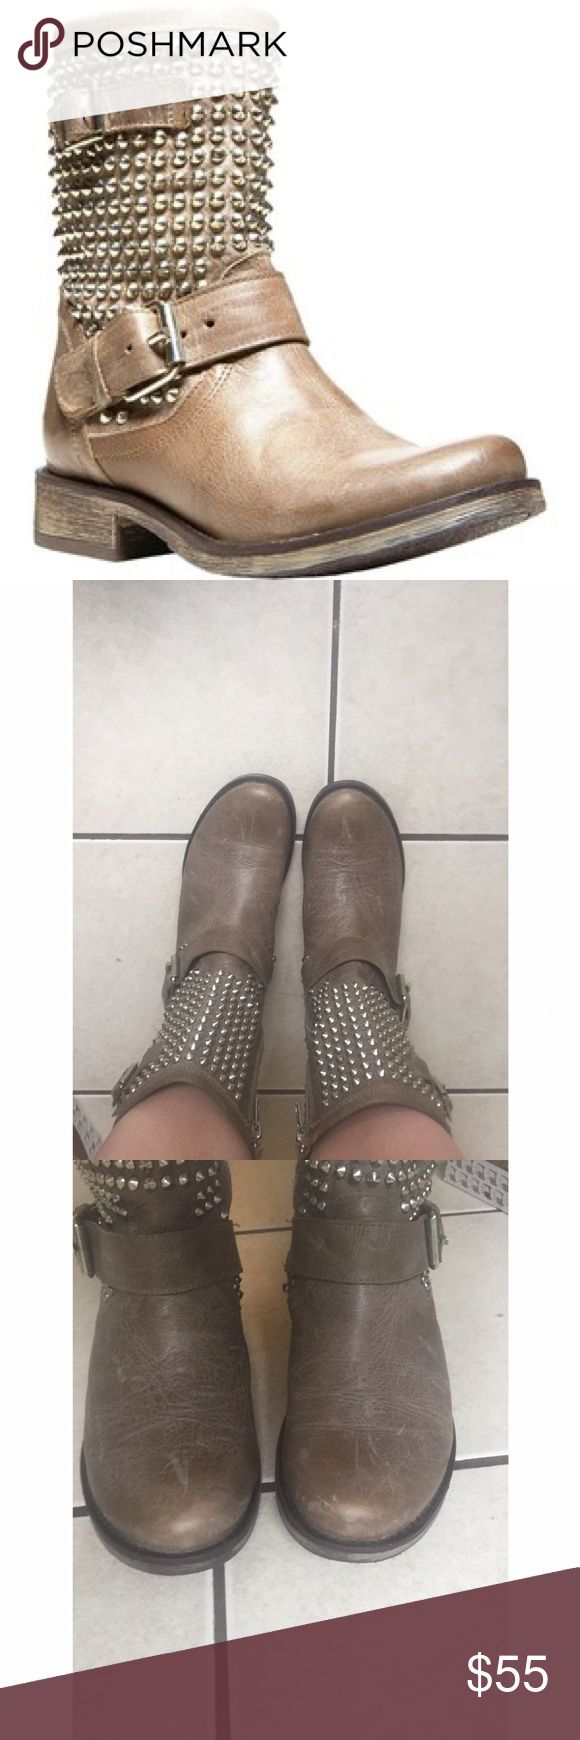 Steve Madden Stone Monicaa Ankle Boot ◾️Size: 9W ◾️ Brand: Steve Madden ◾️ Damage: Indents on top of boots , not visible when worn  ◾️Product name through brand: Monicca ◾️Type of boot: Studded ankle boot ◾️ Times worn outside: One ◾️ Construction materials: Rubber and Leather ◾️ Manufacturing Country: Mexico ◾️ Color: Stone ◾️ No trades but all offers considered  ◾️ Feel free to ask any questions before purchasing 💕 ◾️ Can ship out same day on most days if purchased before 4pm eastern time…